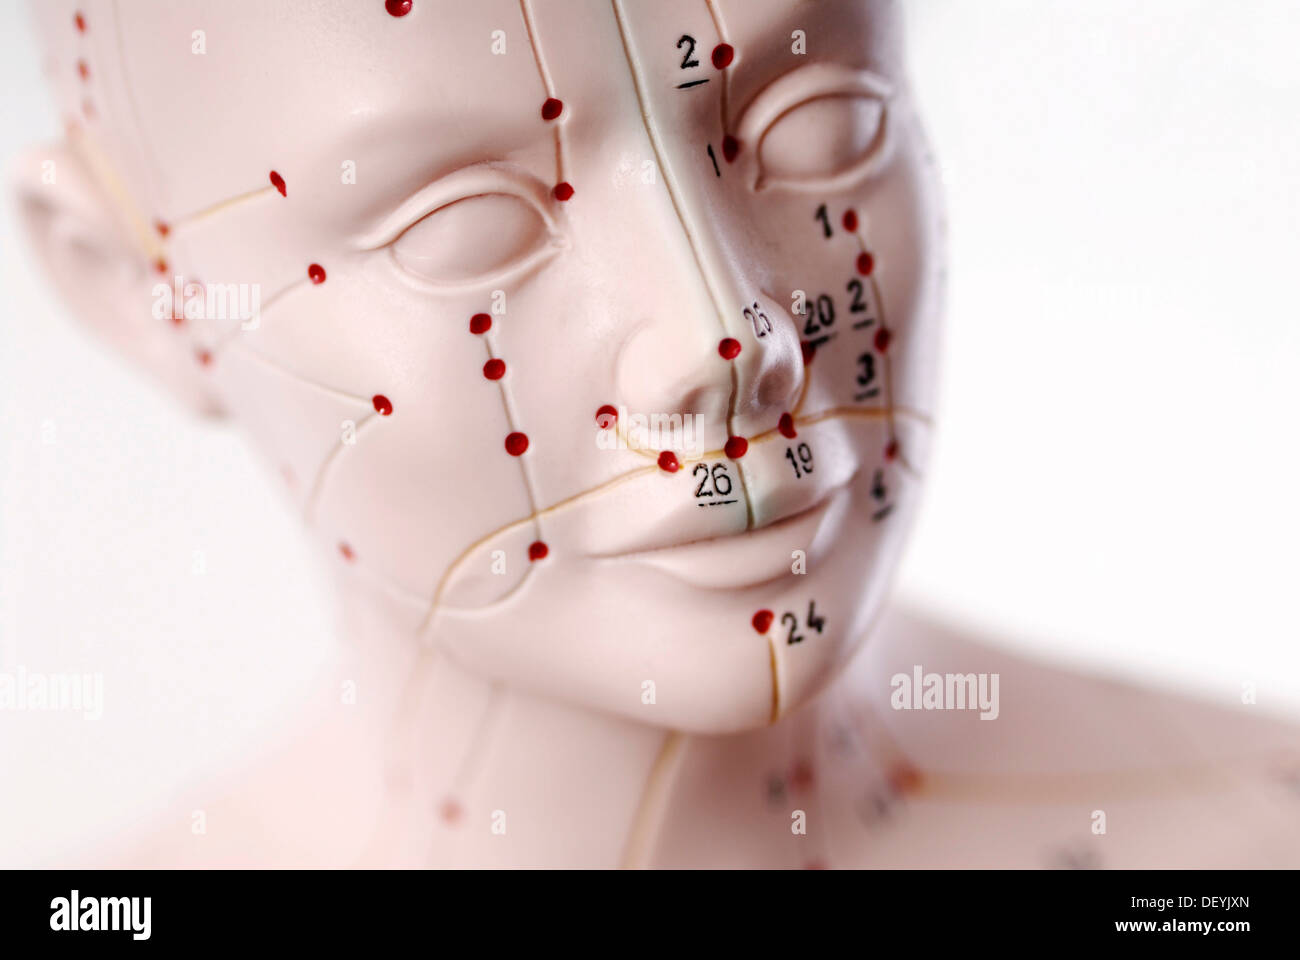 Anatomical model, head with acupuncture points Stock Photo